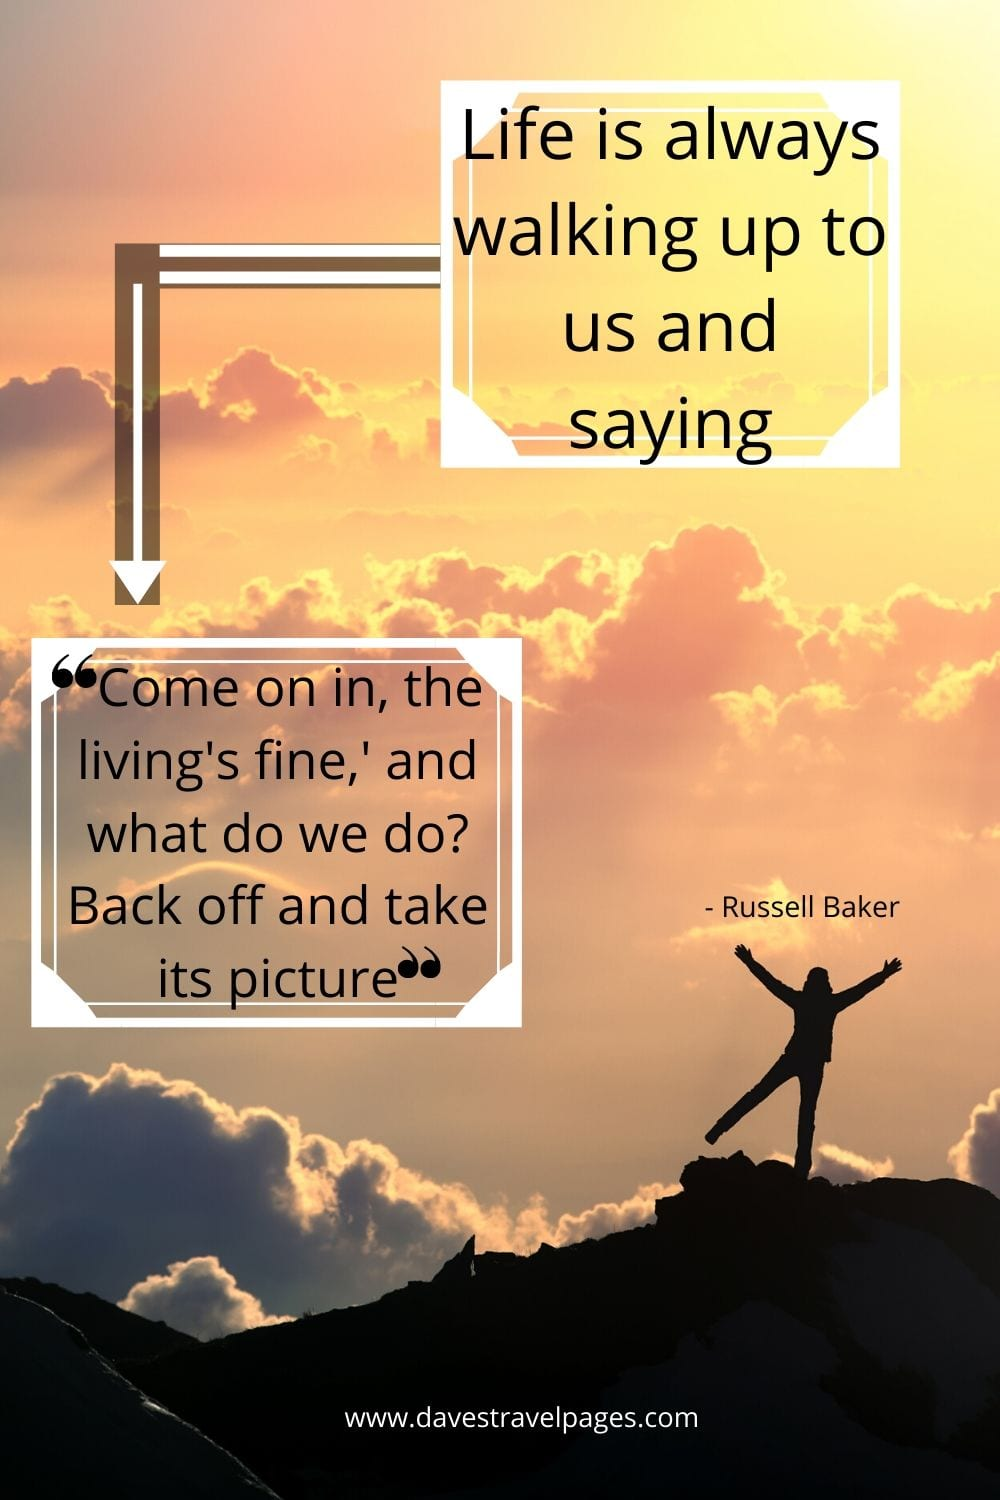 Quotes about life: Life is always walking up to us and saying. 'Come on in, the living's fine,' and what do we do? Back off and take its picture. - Russell Baker